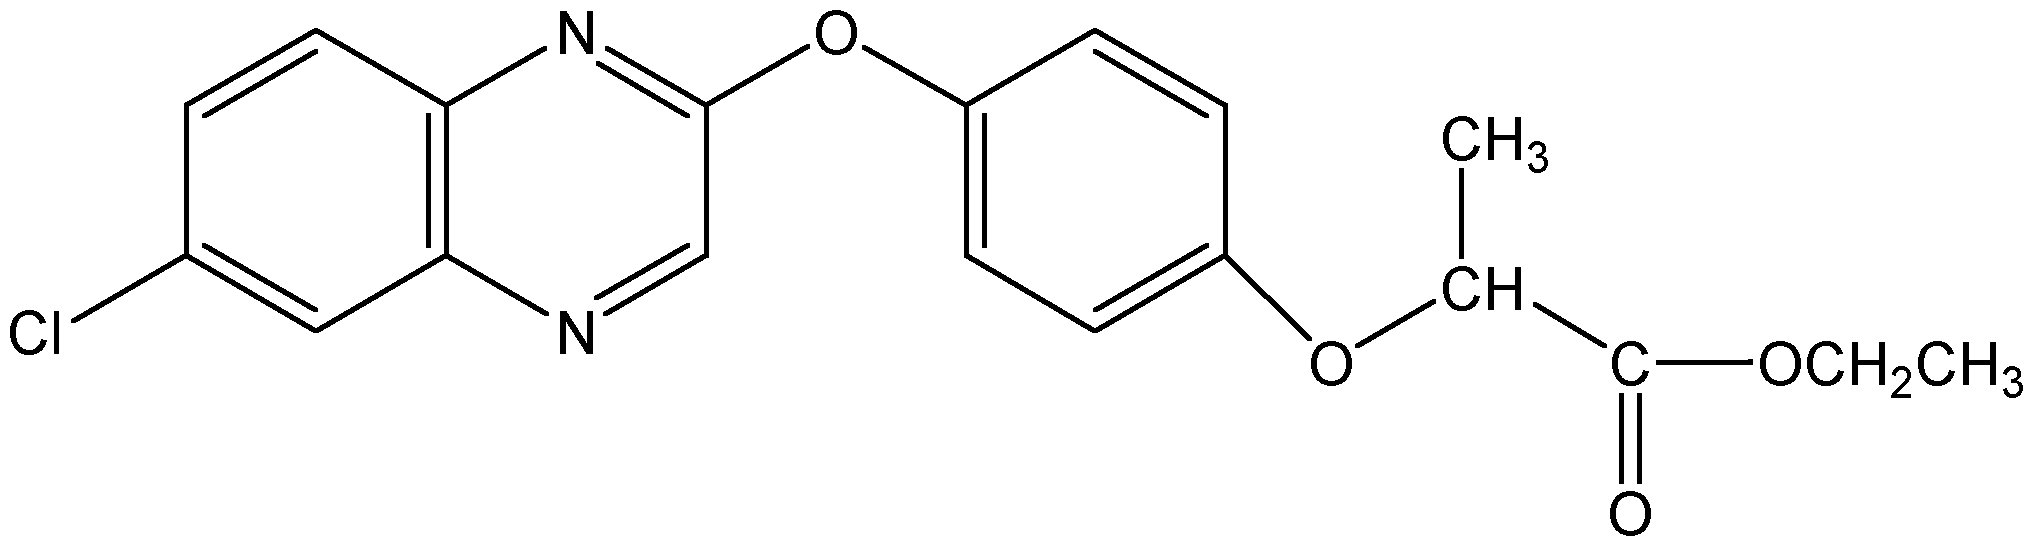 Chemical Structure for Quizalofop-P-ethyl